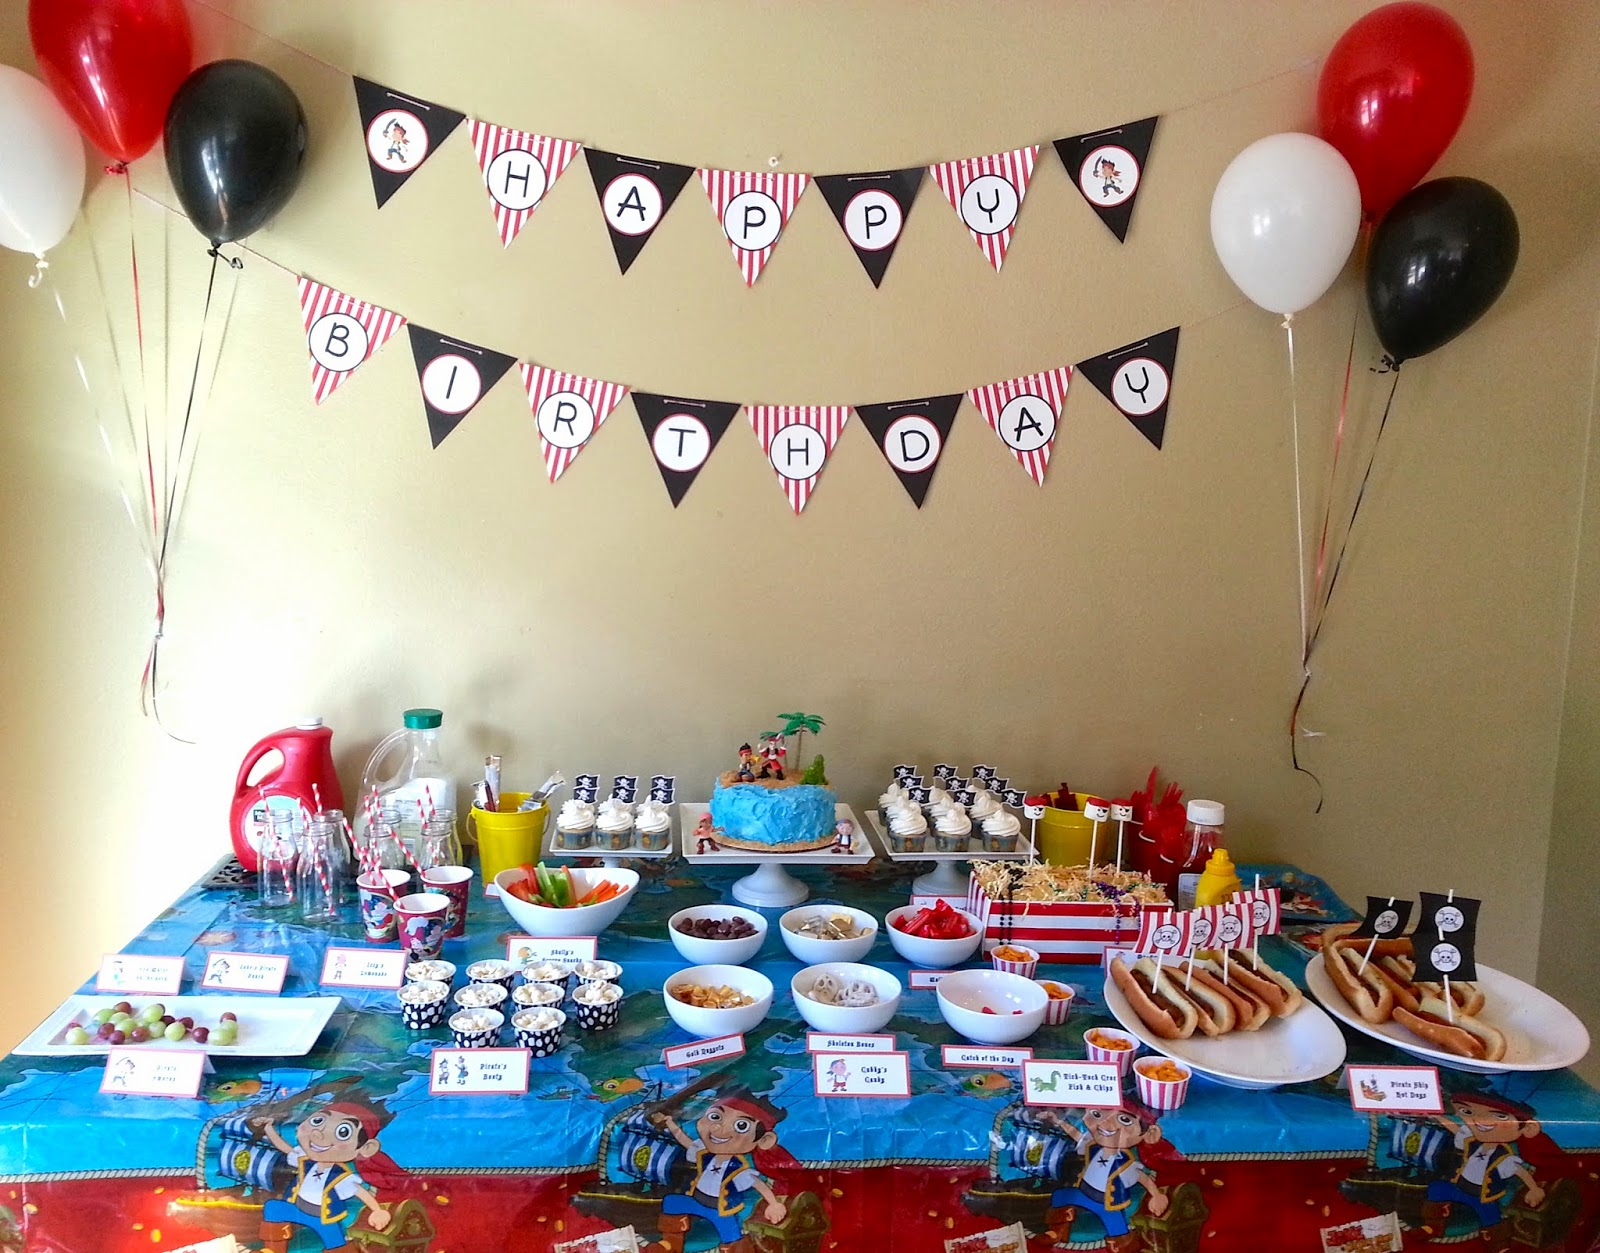 Much Kneaded: Jake and the Neverland Pirates Birthday Party - Part 1